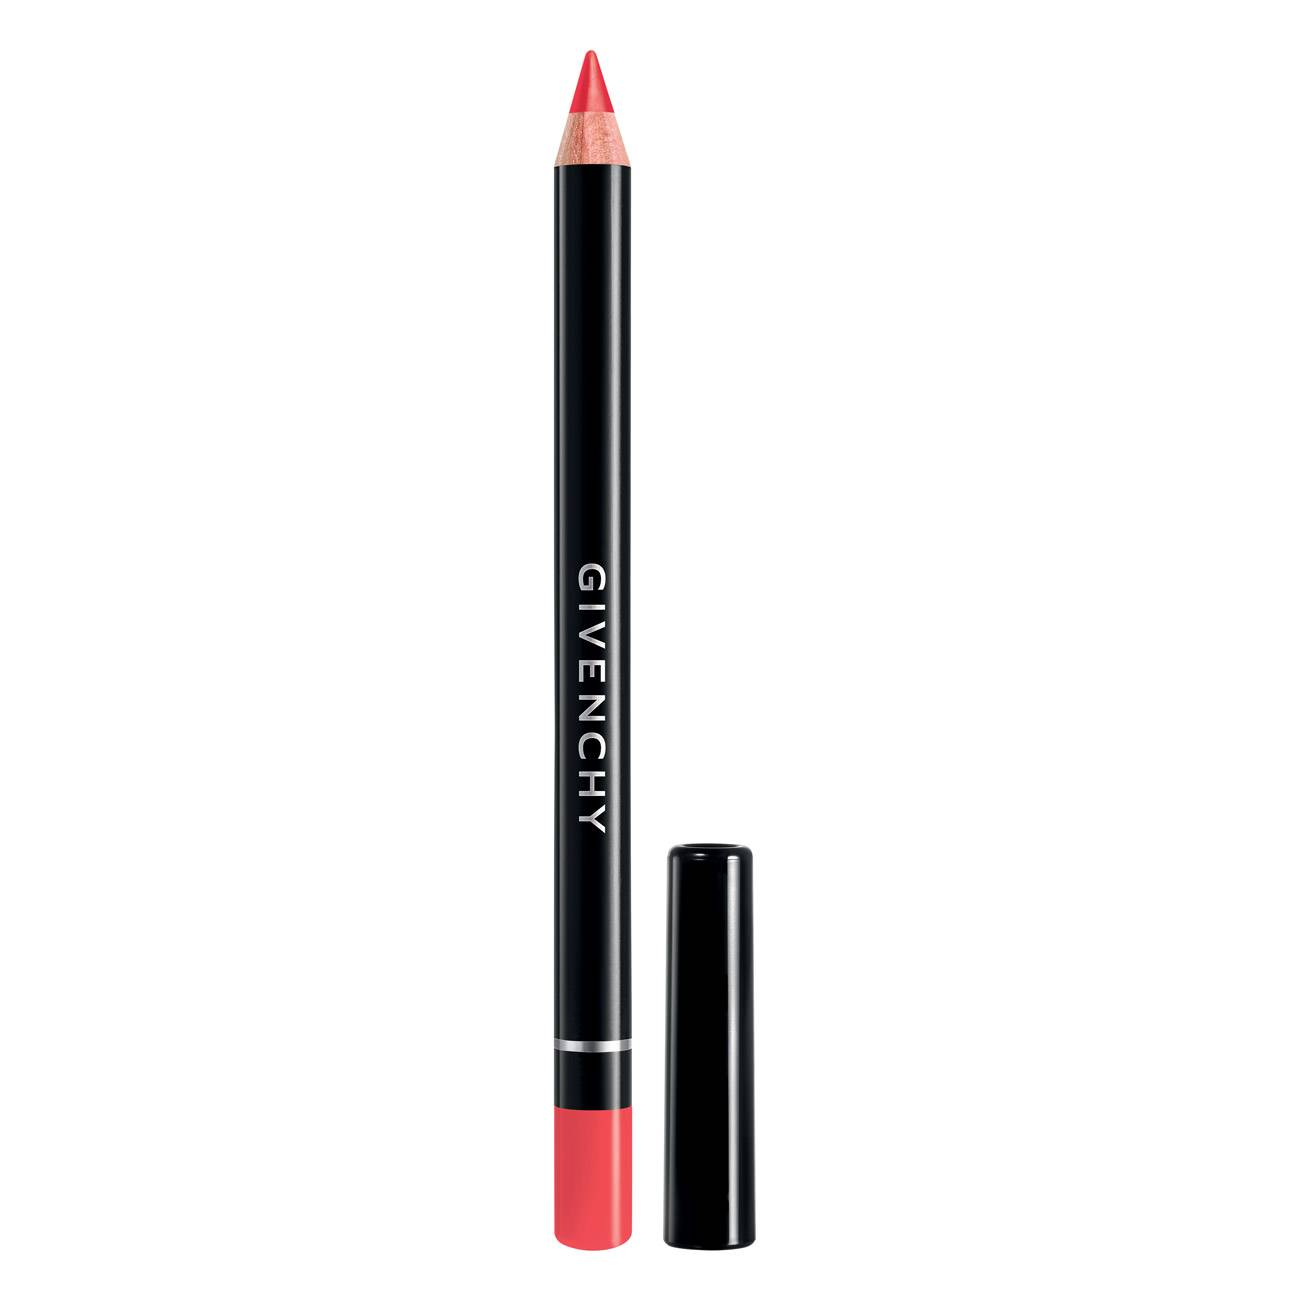 Lip Liner 1 G Corail Decollete 5 Givenchy imagine 2021 bestvalue.eu